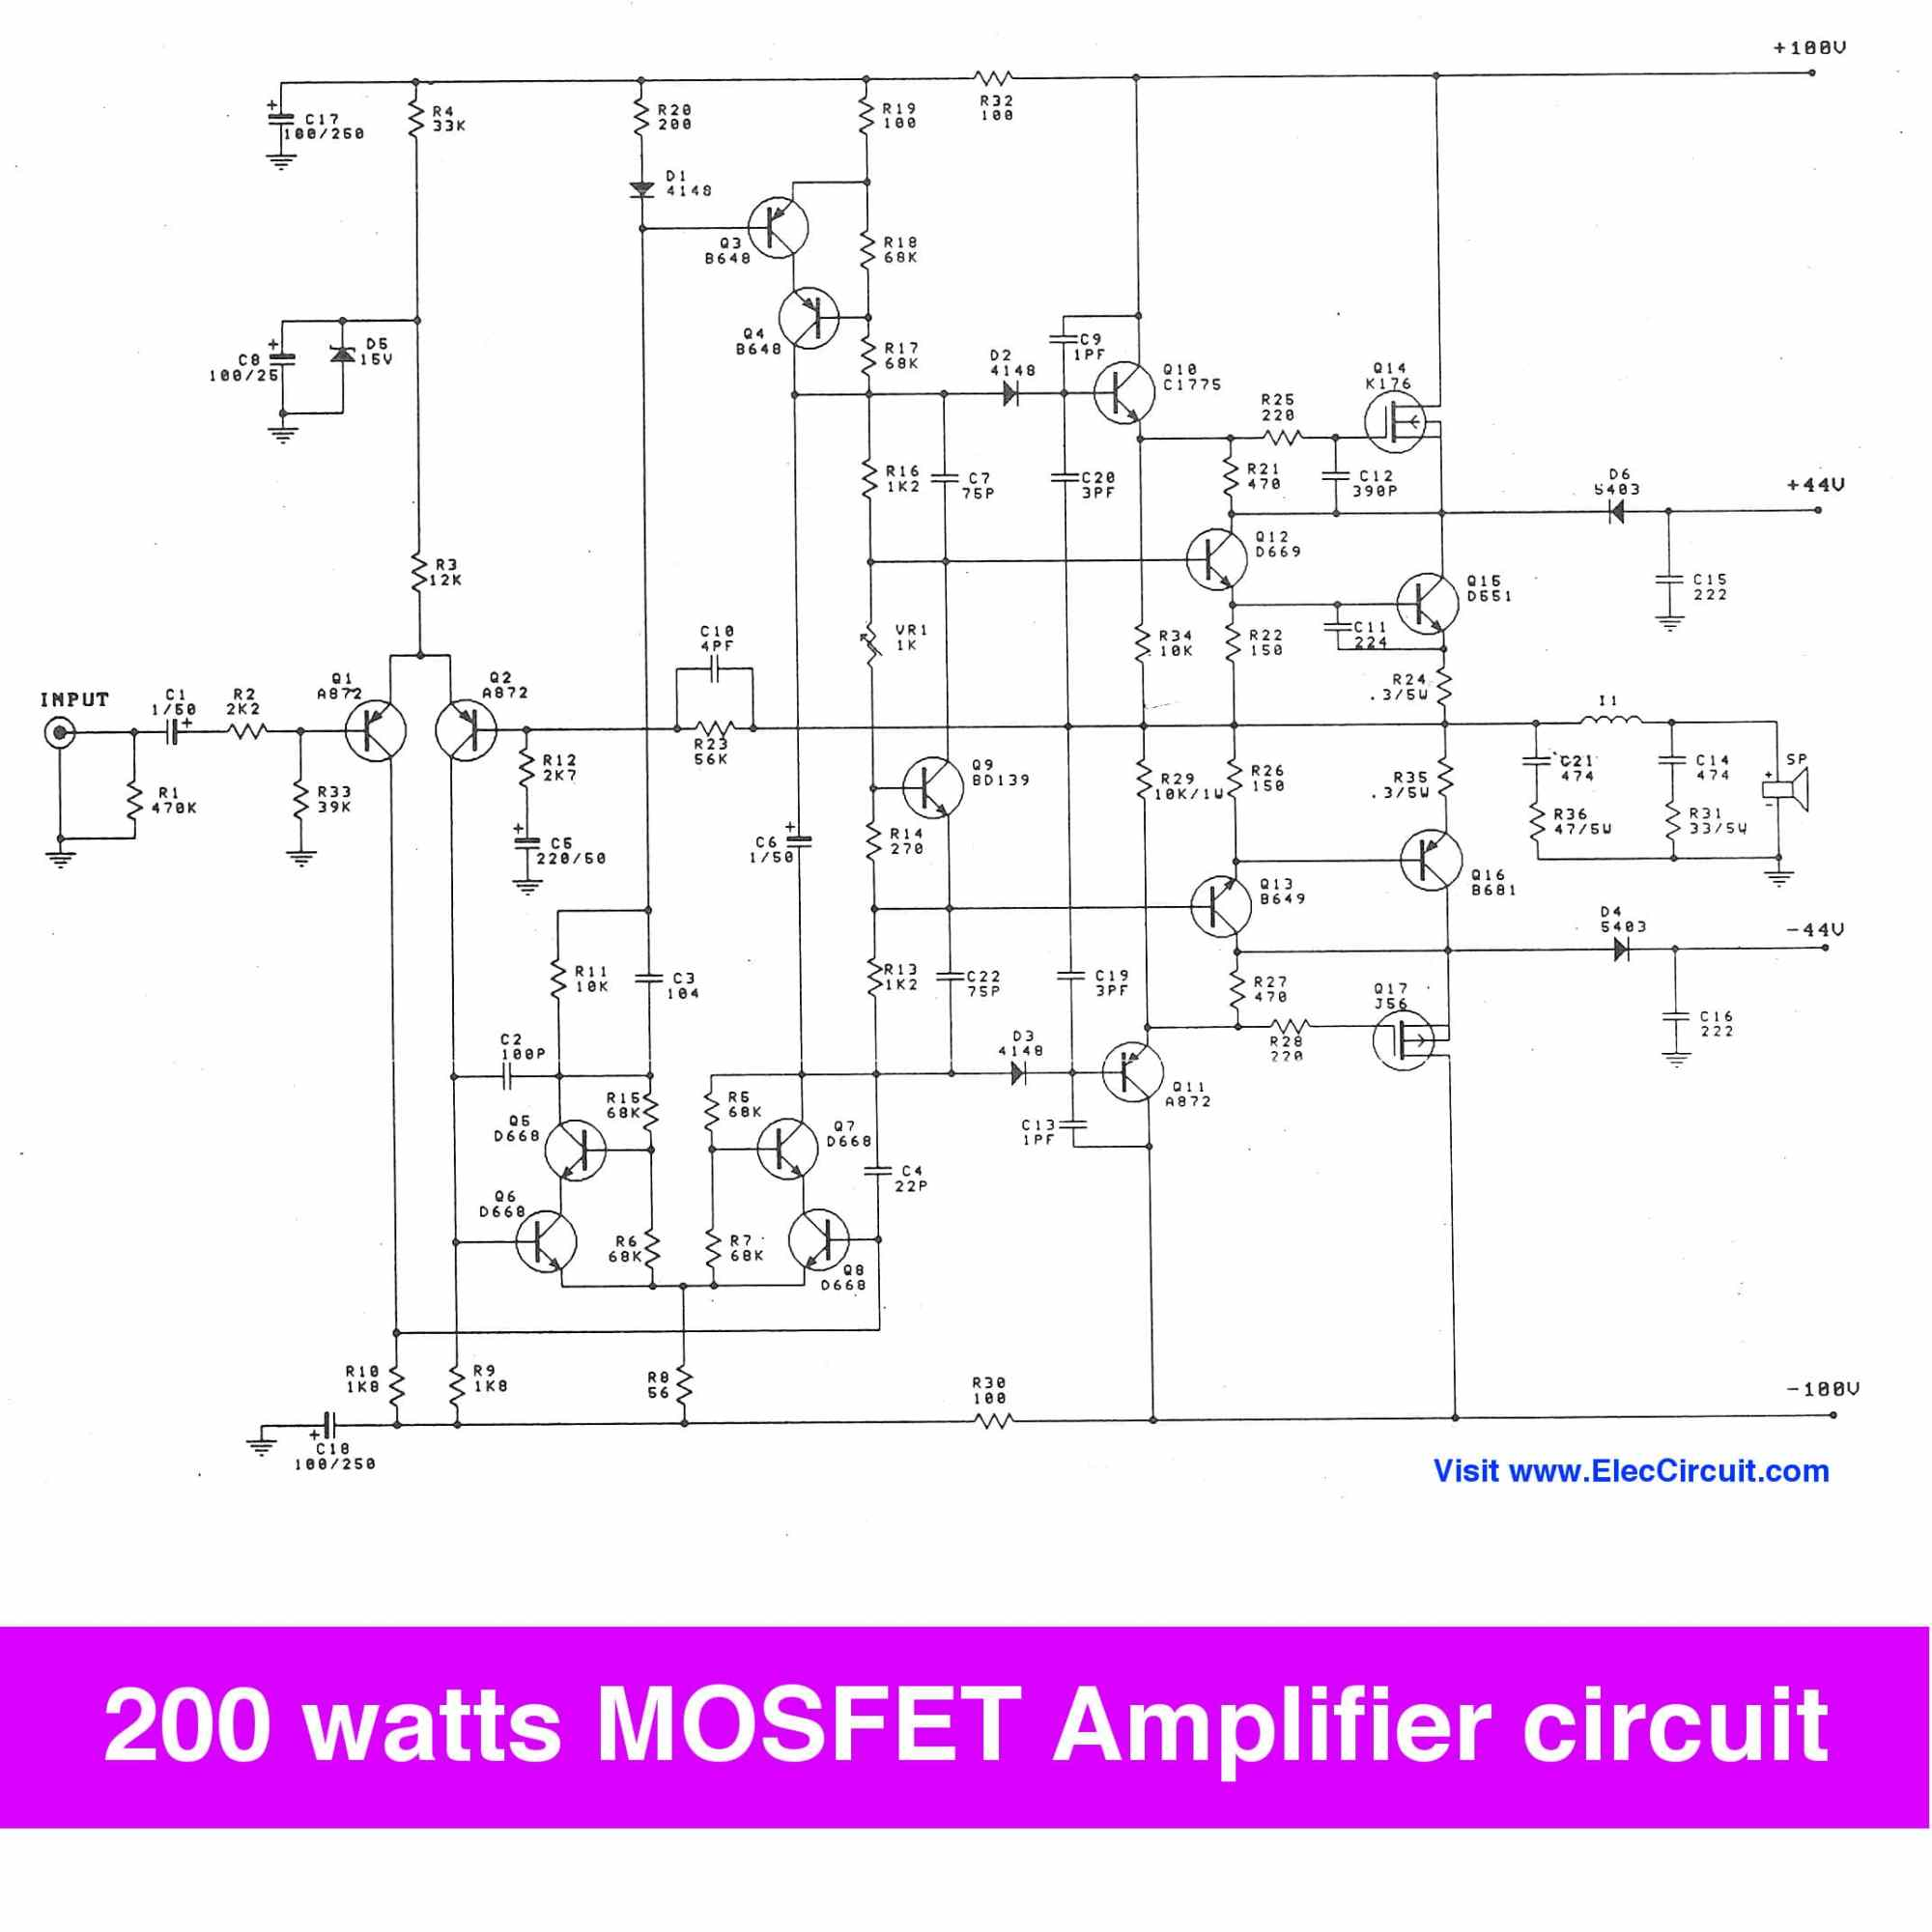 hight resolution of 200 watt mosfet amplifier circuit to 300w on class g projects circuits 200 watt mosfet power amplifier schematic